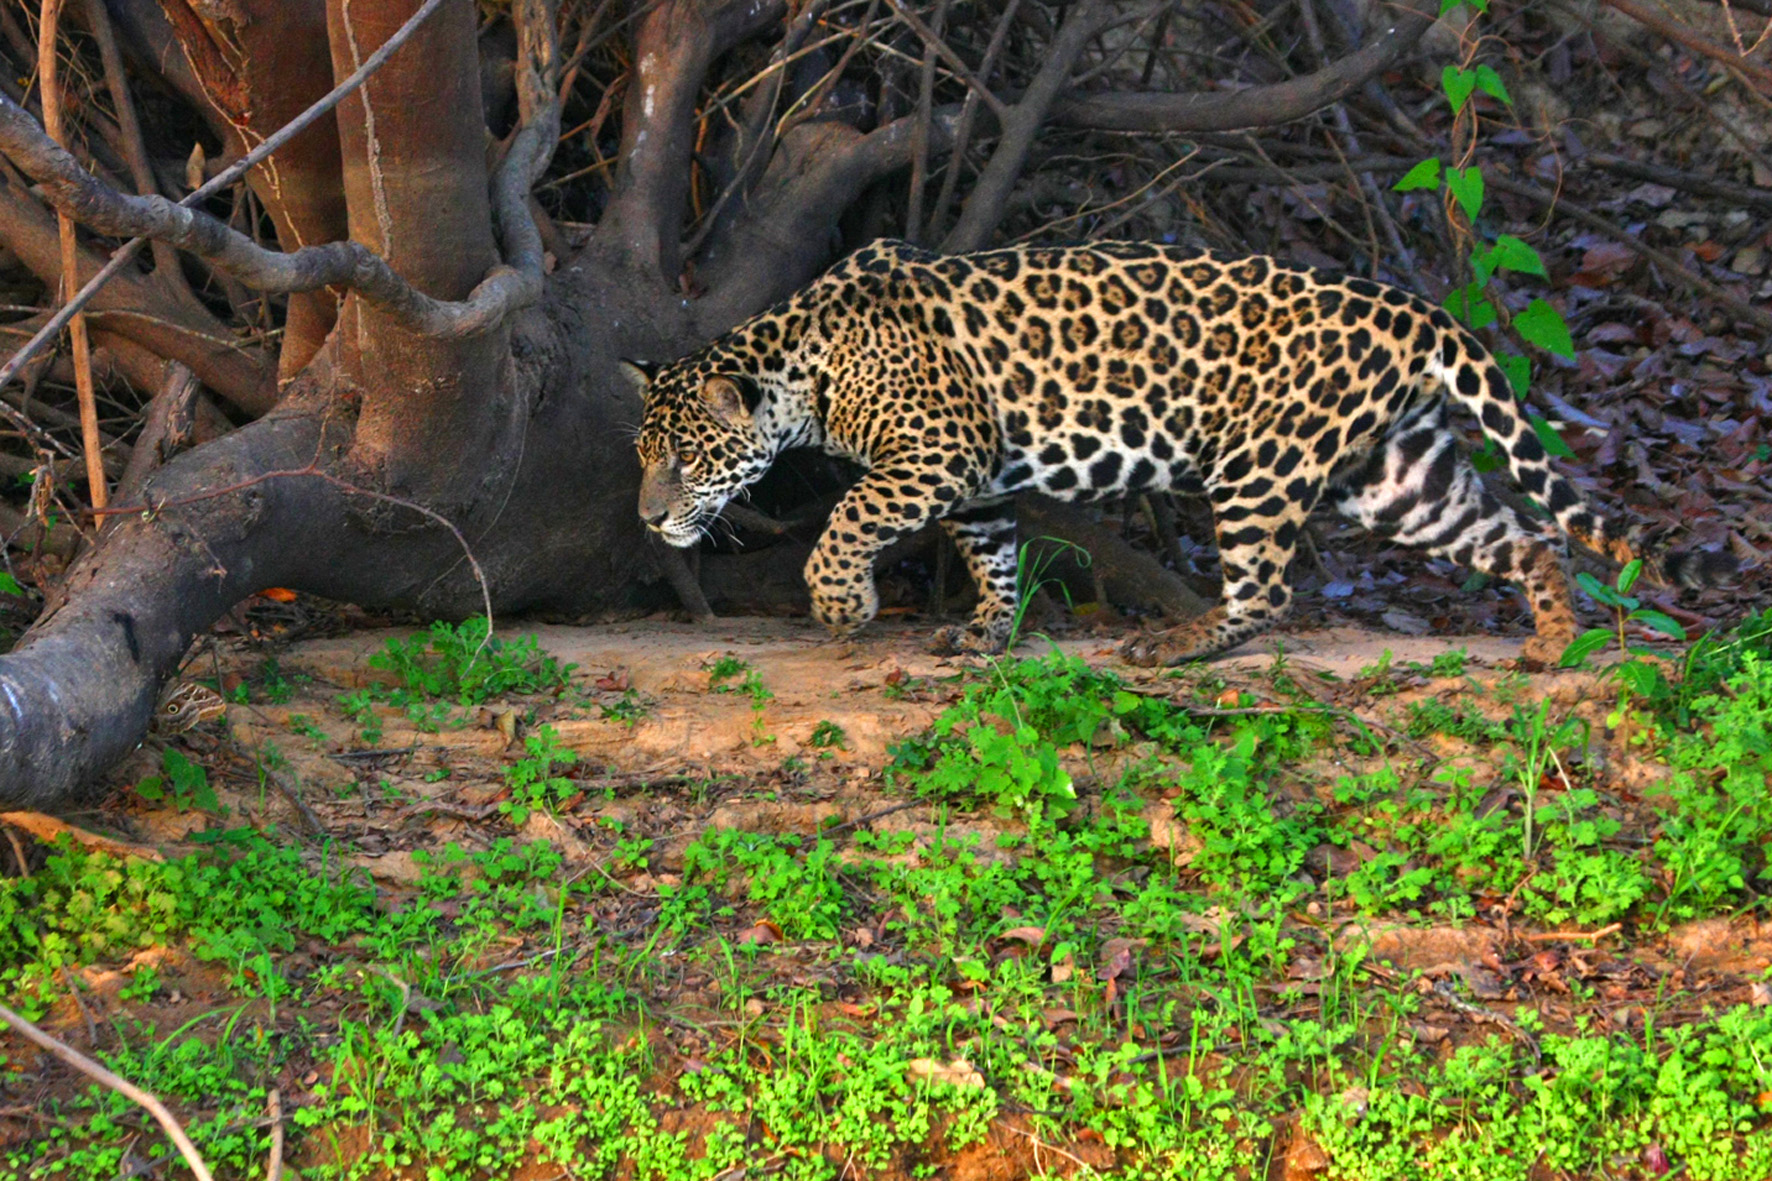 11 Facts About the Pantanal Wetlands